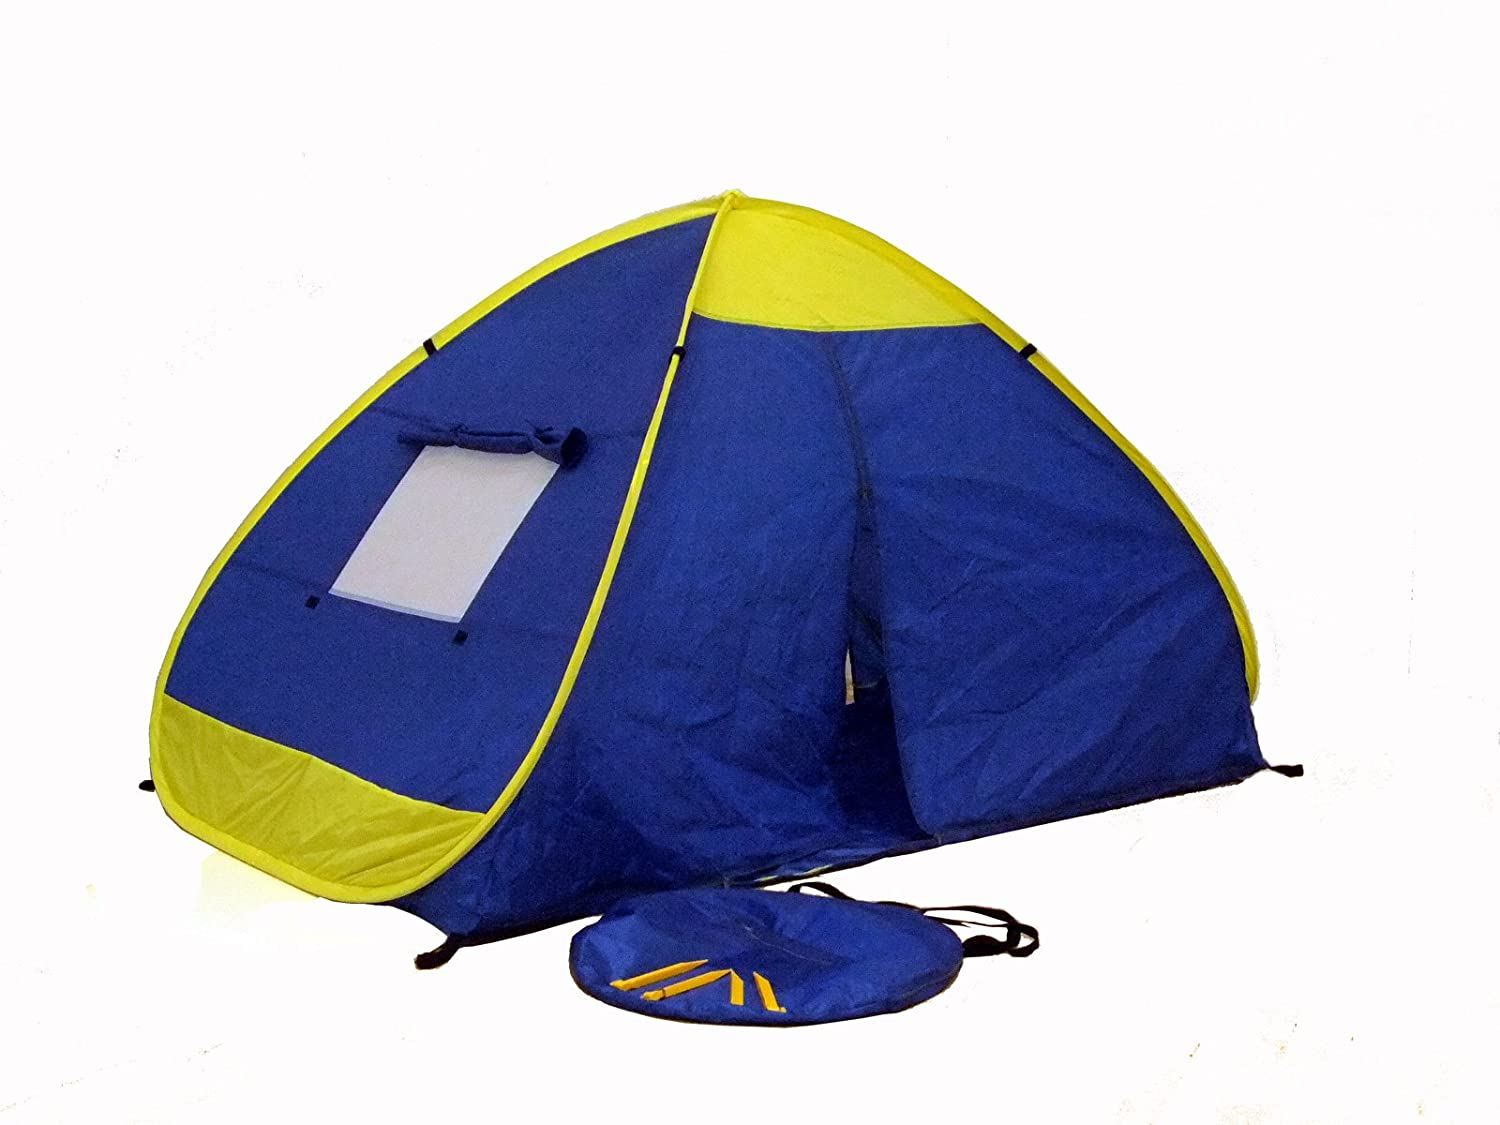 Amazon.com  Pop up outdoor family tent (4 Panels)  Instant Tent  Sports u0026 Outdoors  sc 1 st  Amazon.com & Amazon.com : Pop up outdoor family tent (4 Panels) : Instant Tent ...